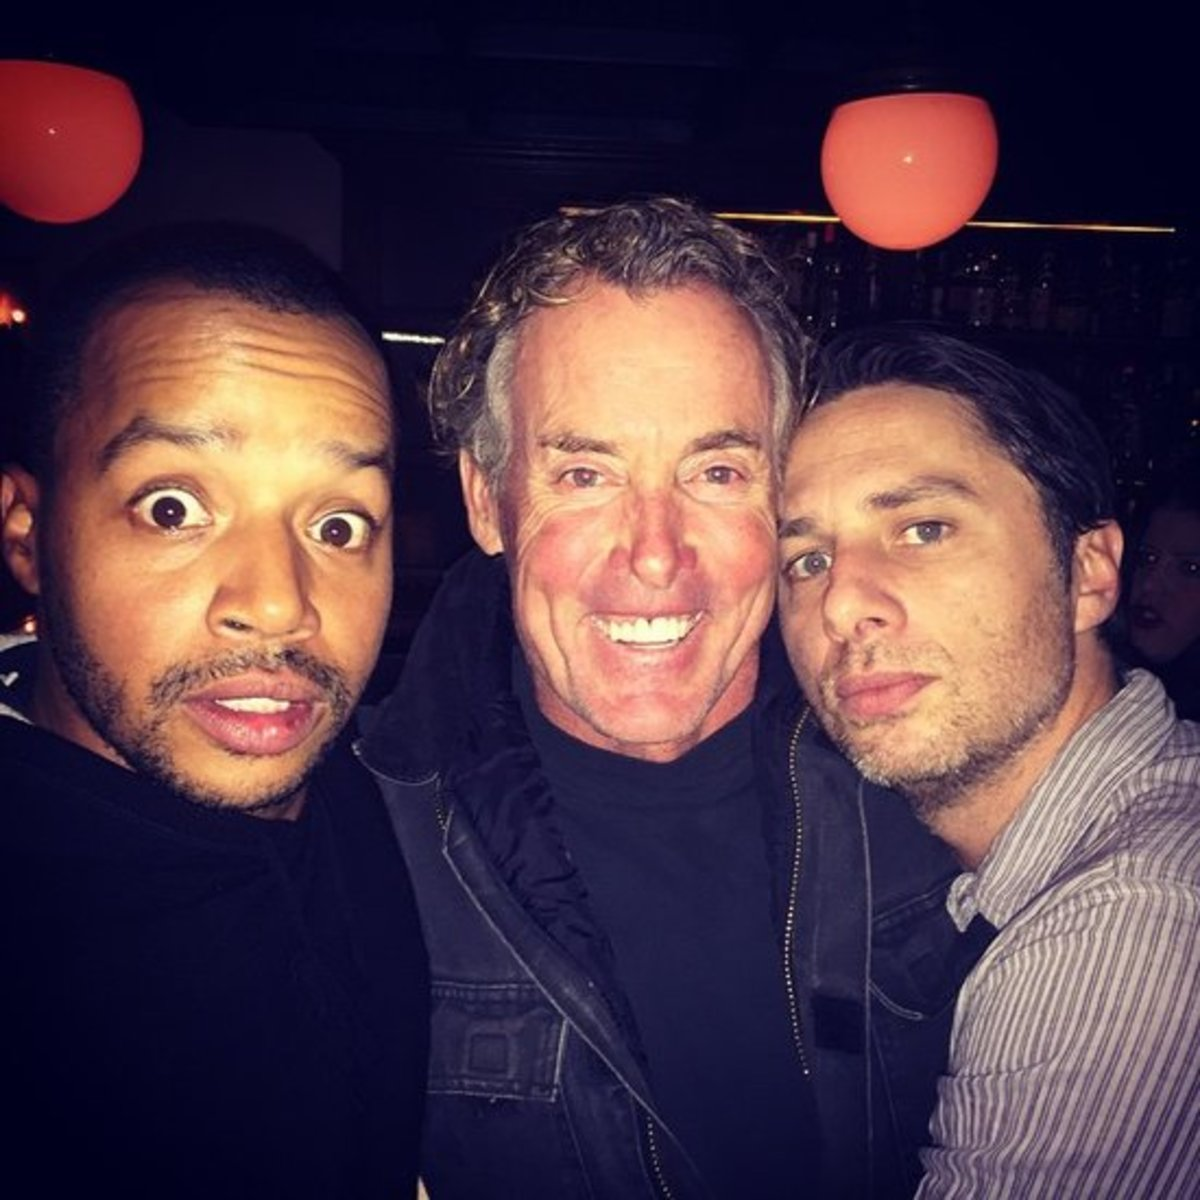 Donald Faison, John C. McGinley, and Zach Braff reunited in 2014 for a boy's night out.